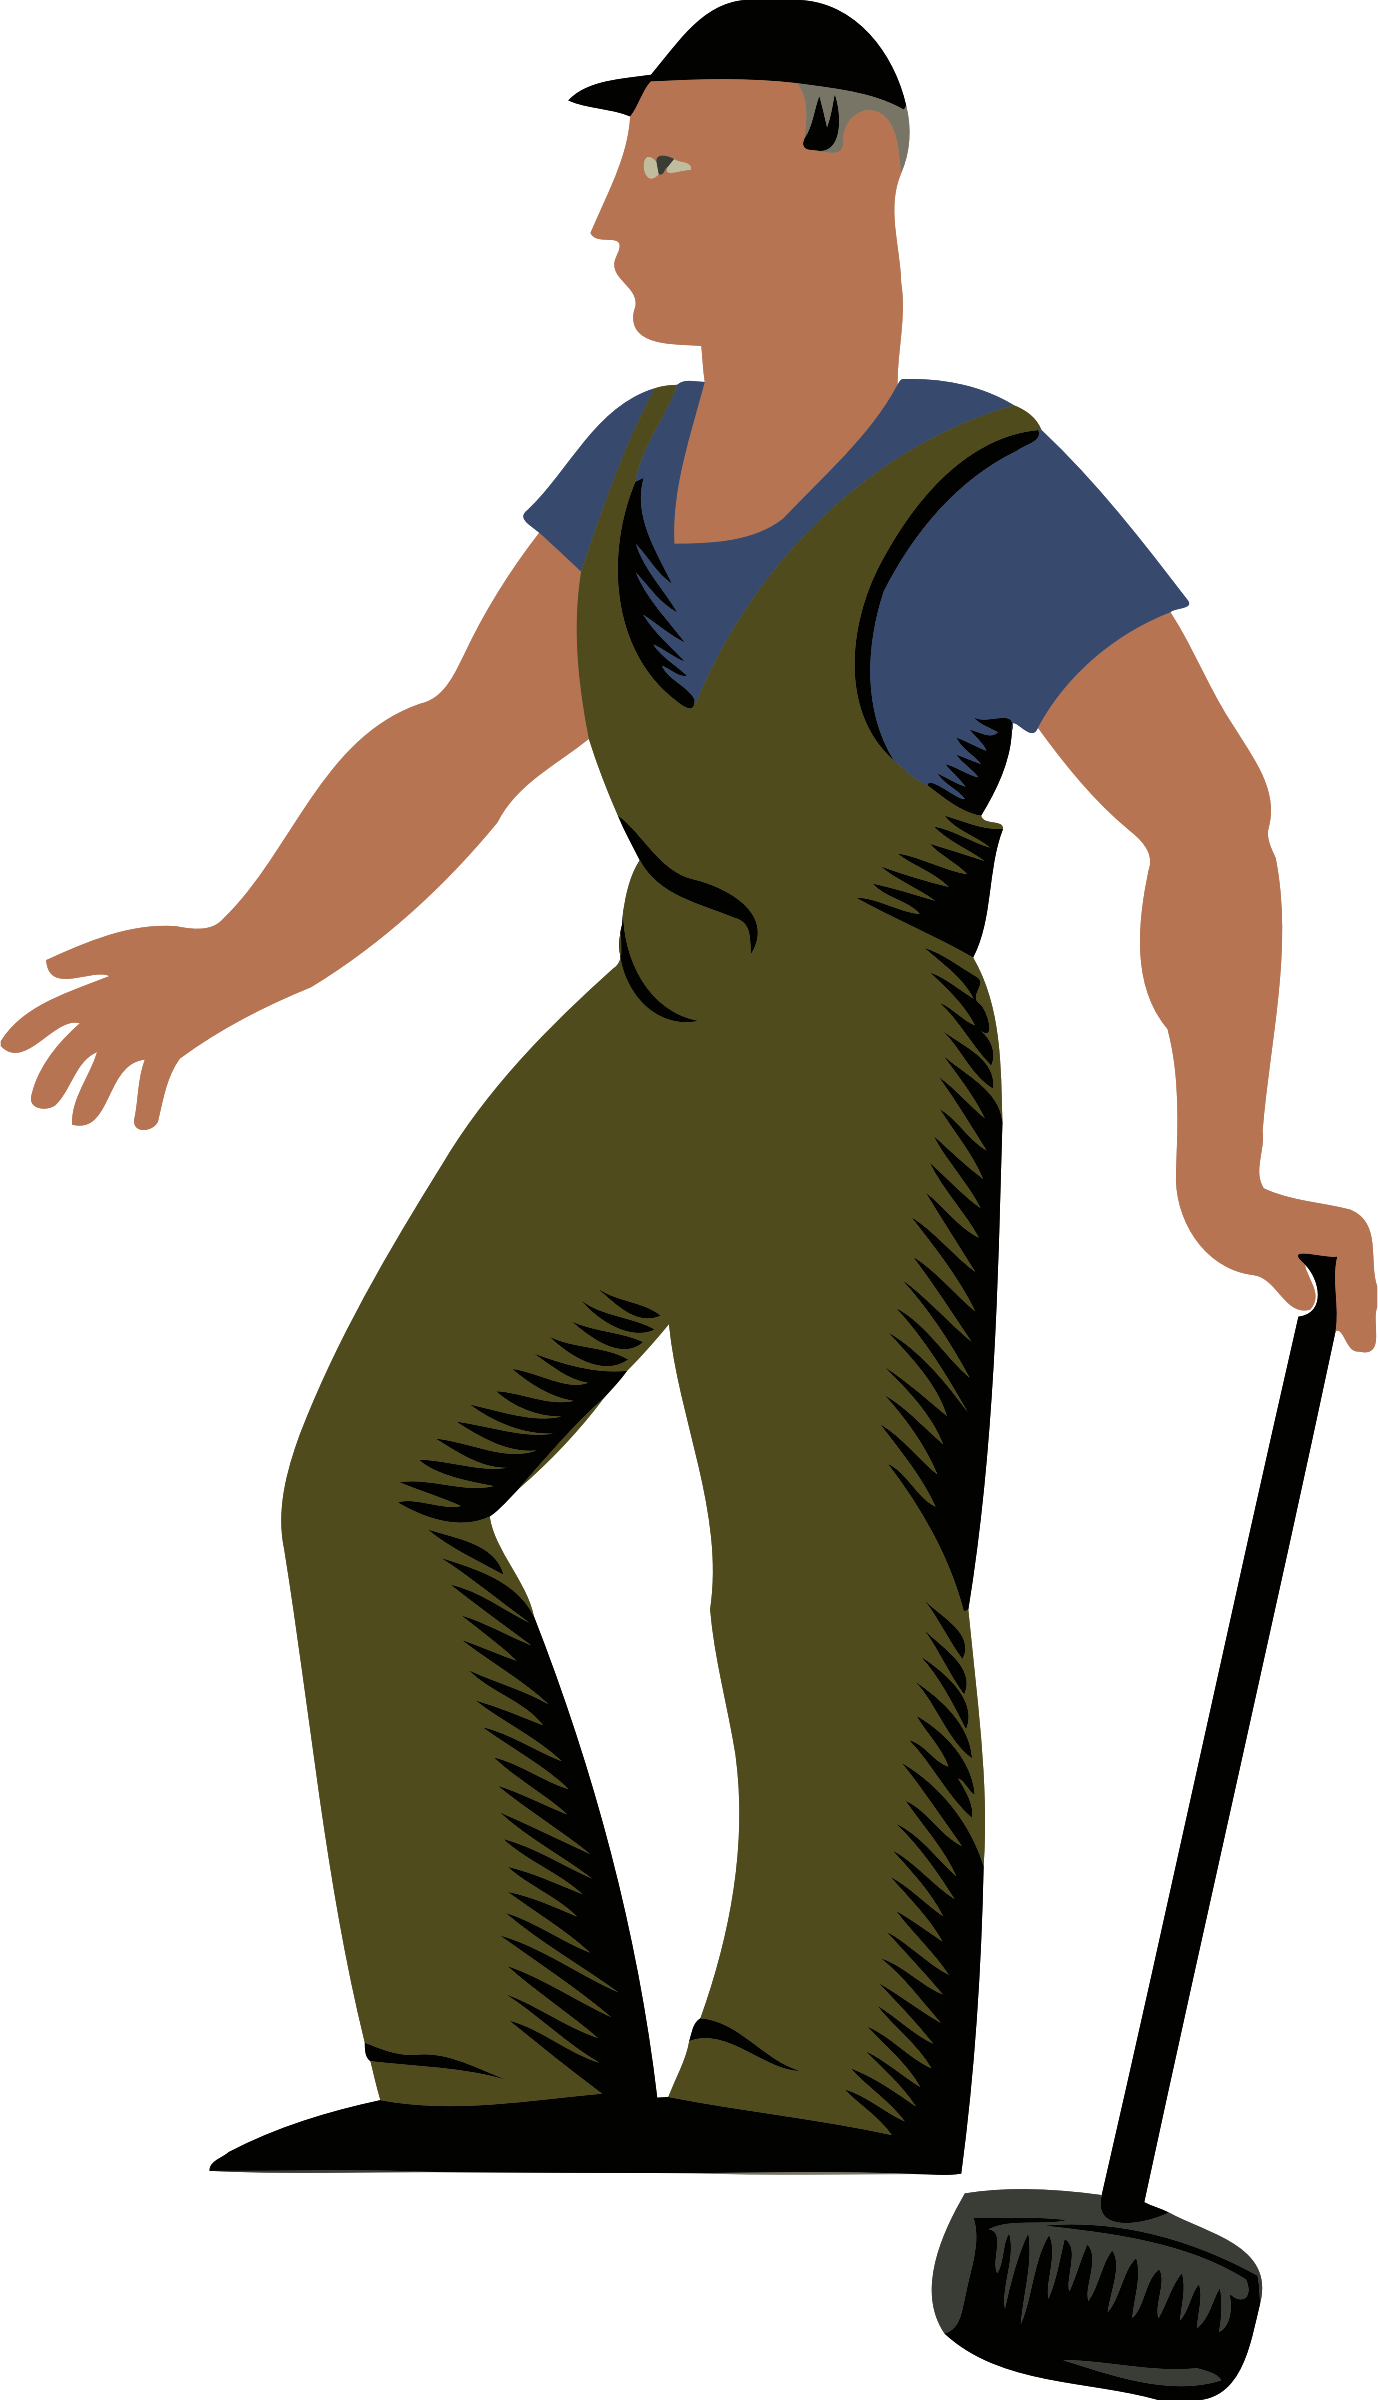 Working clipart laborer. Worker big image png